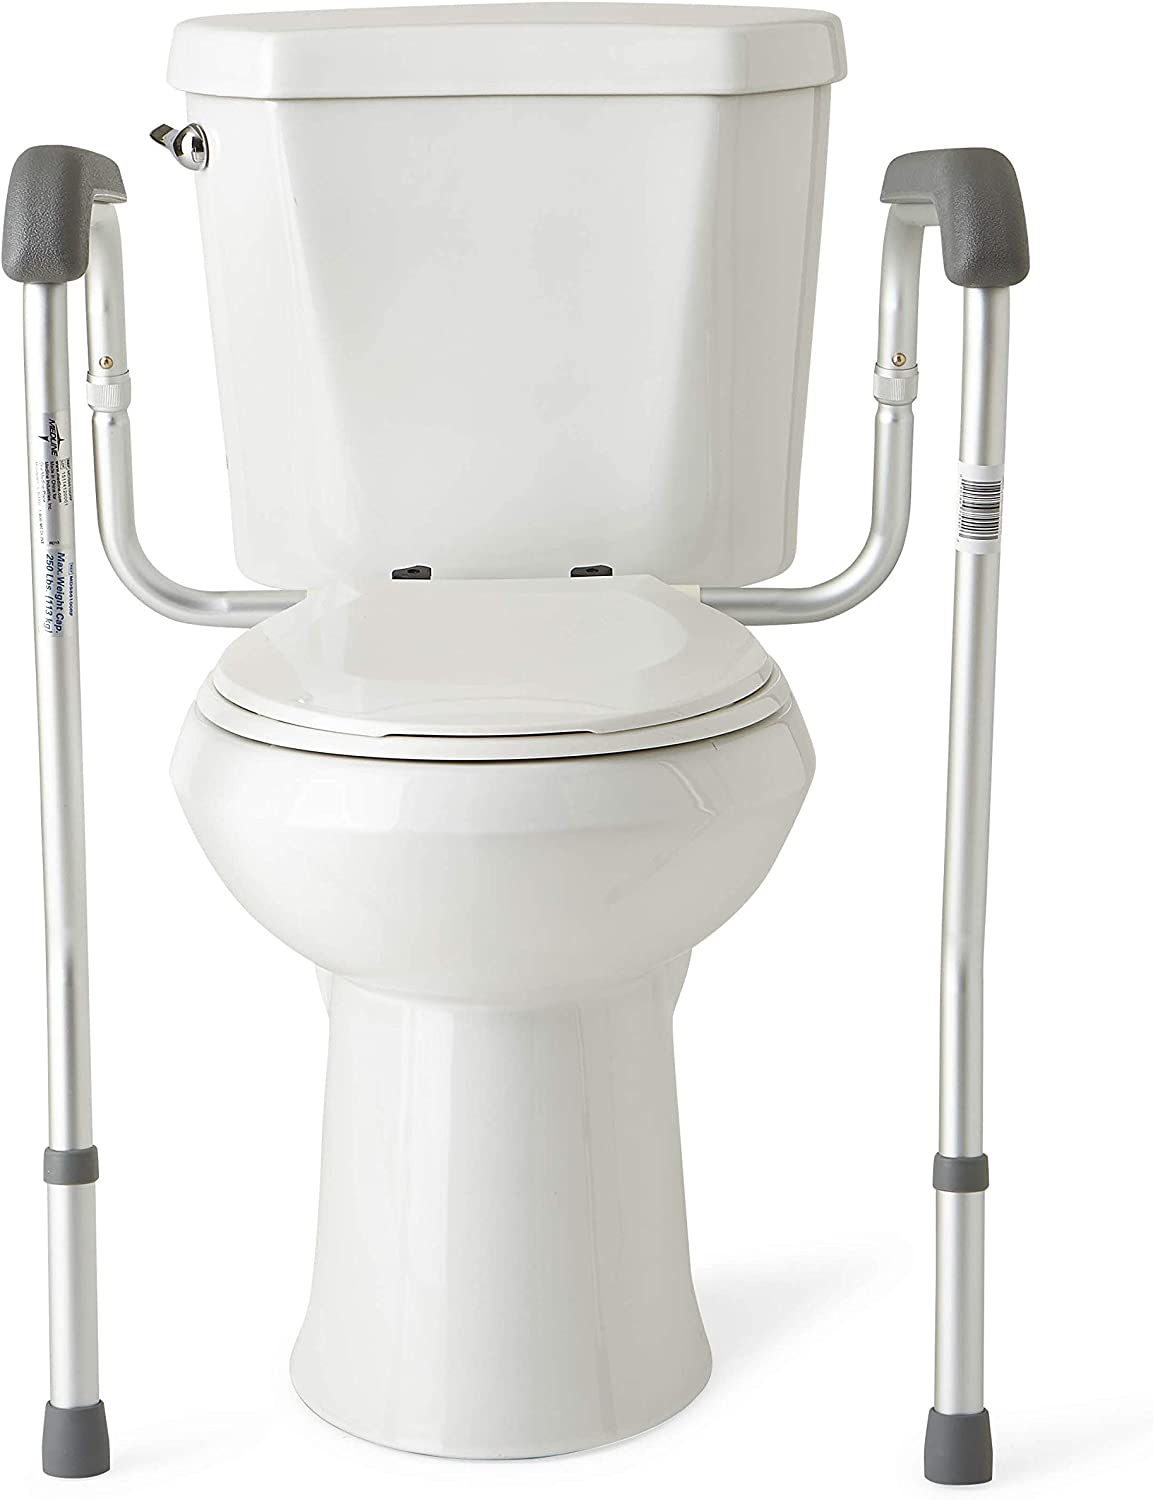 best toilet safety rails: Medline Toilet Safety Rails